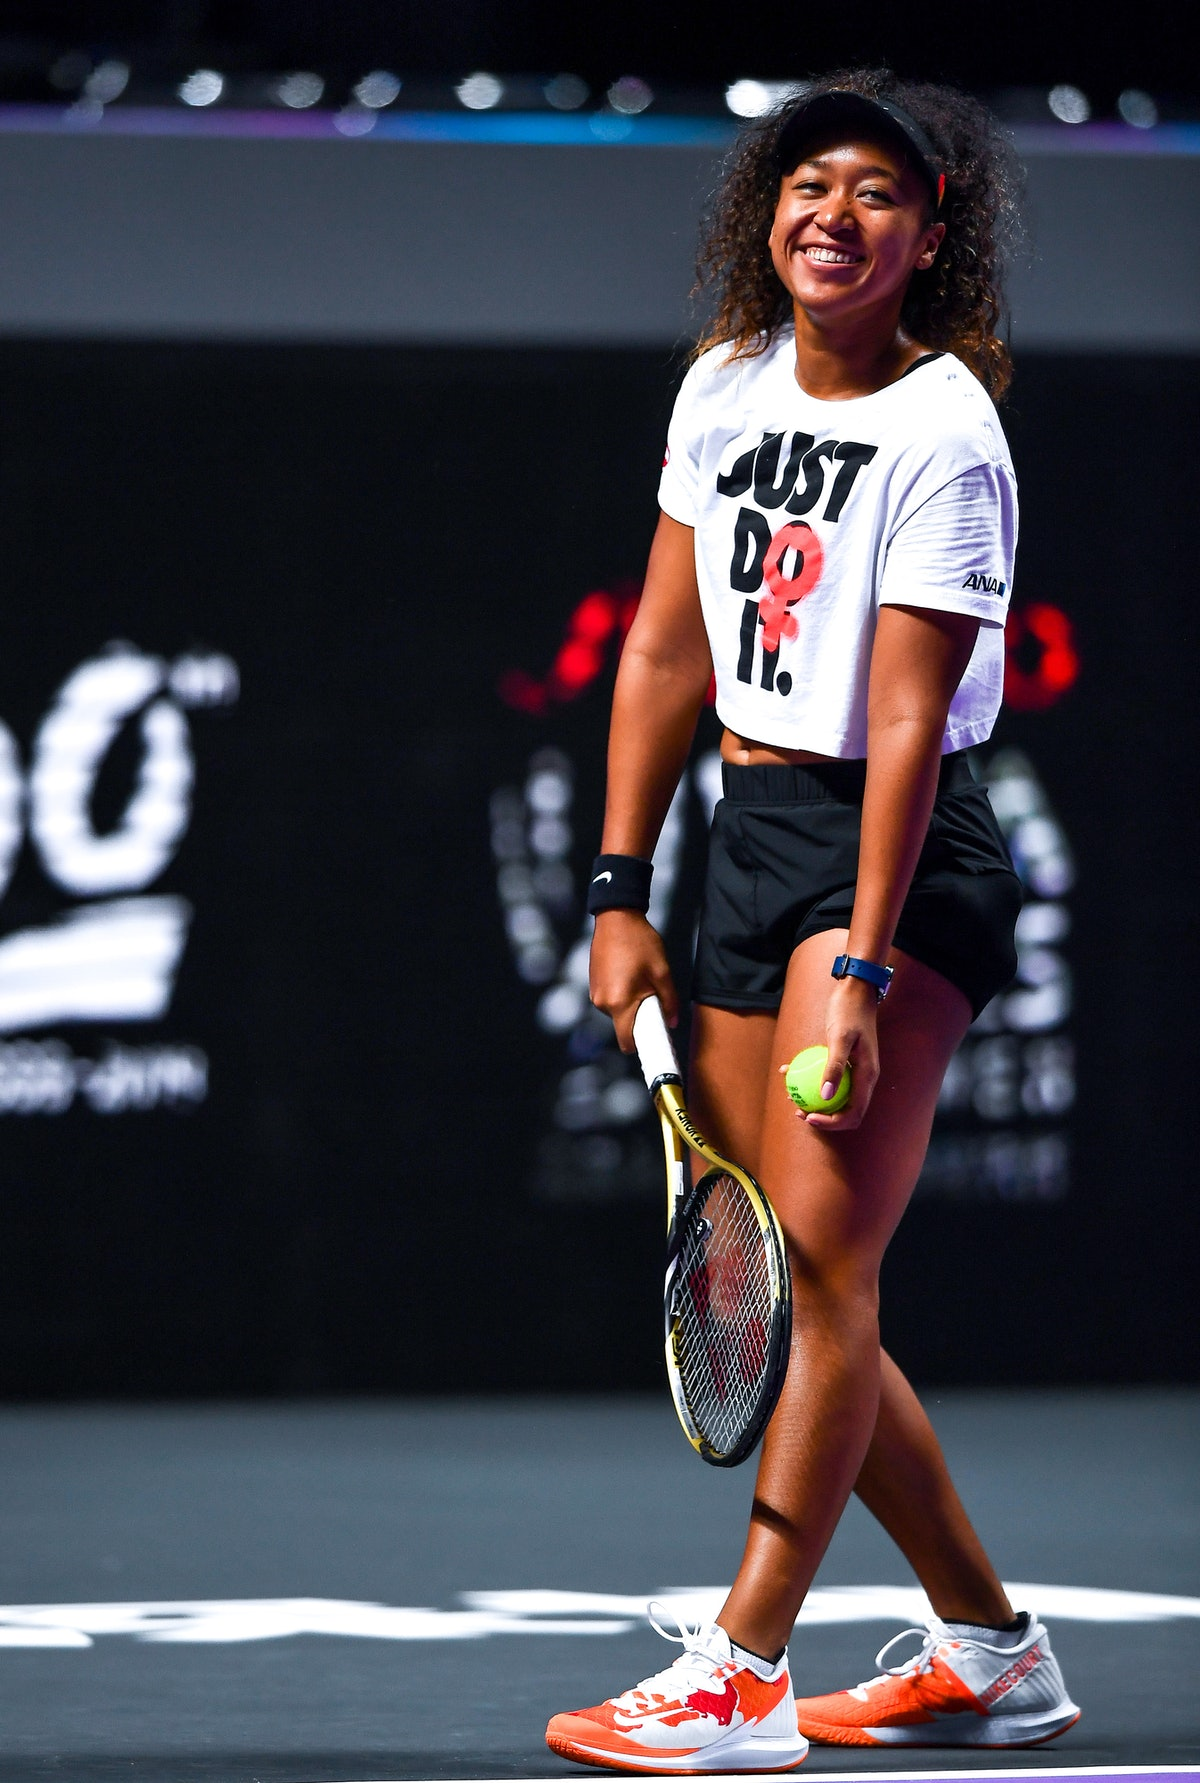 Naomi Osaka of Japan, who will compete in the 2021 Olympics, attends a training session.